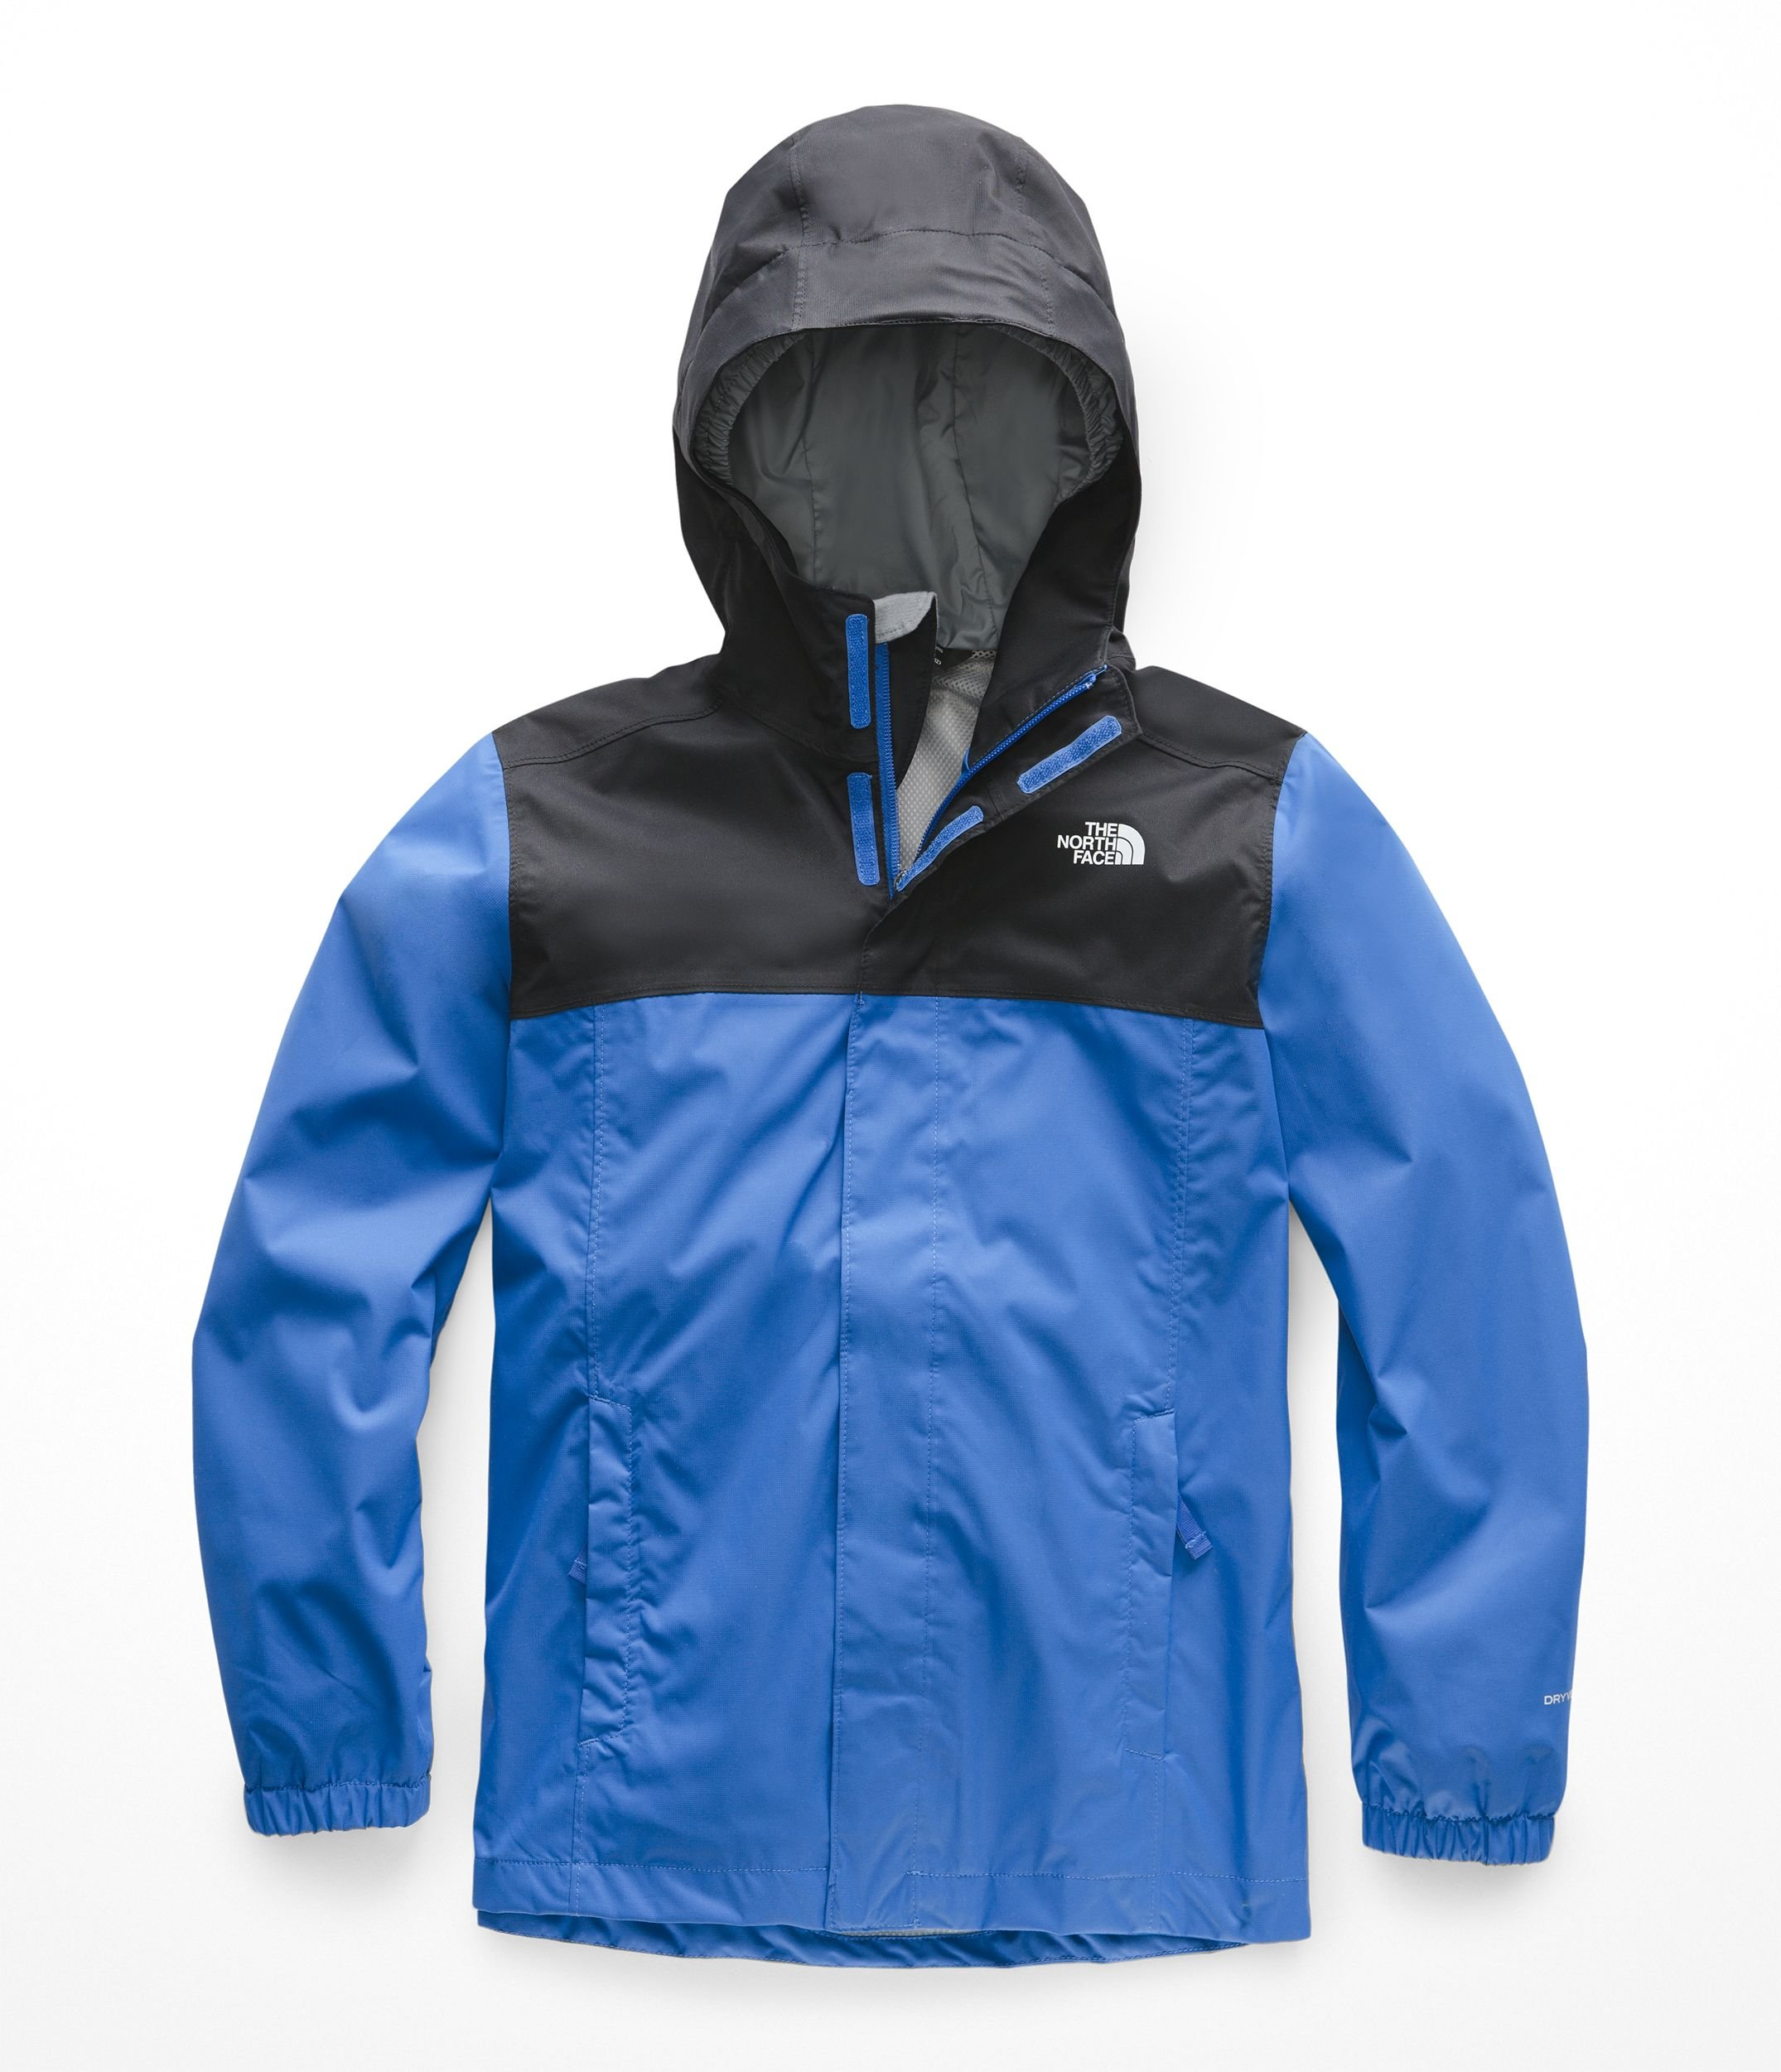 The North Face Boy's Resolve Reflective Jacket - Turkish Sea - XL by The North Face